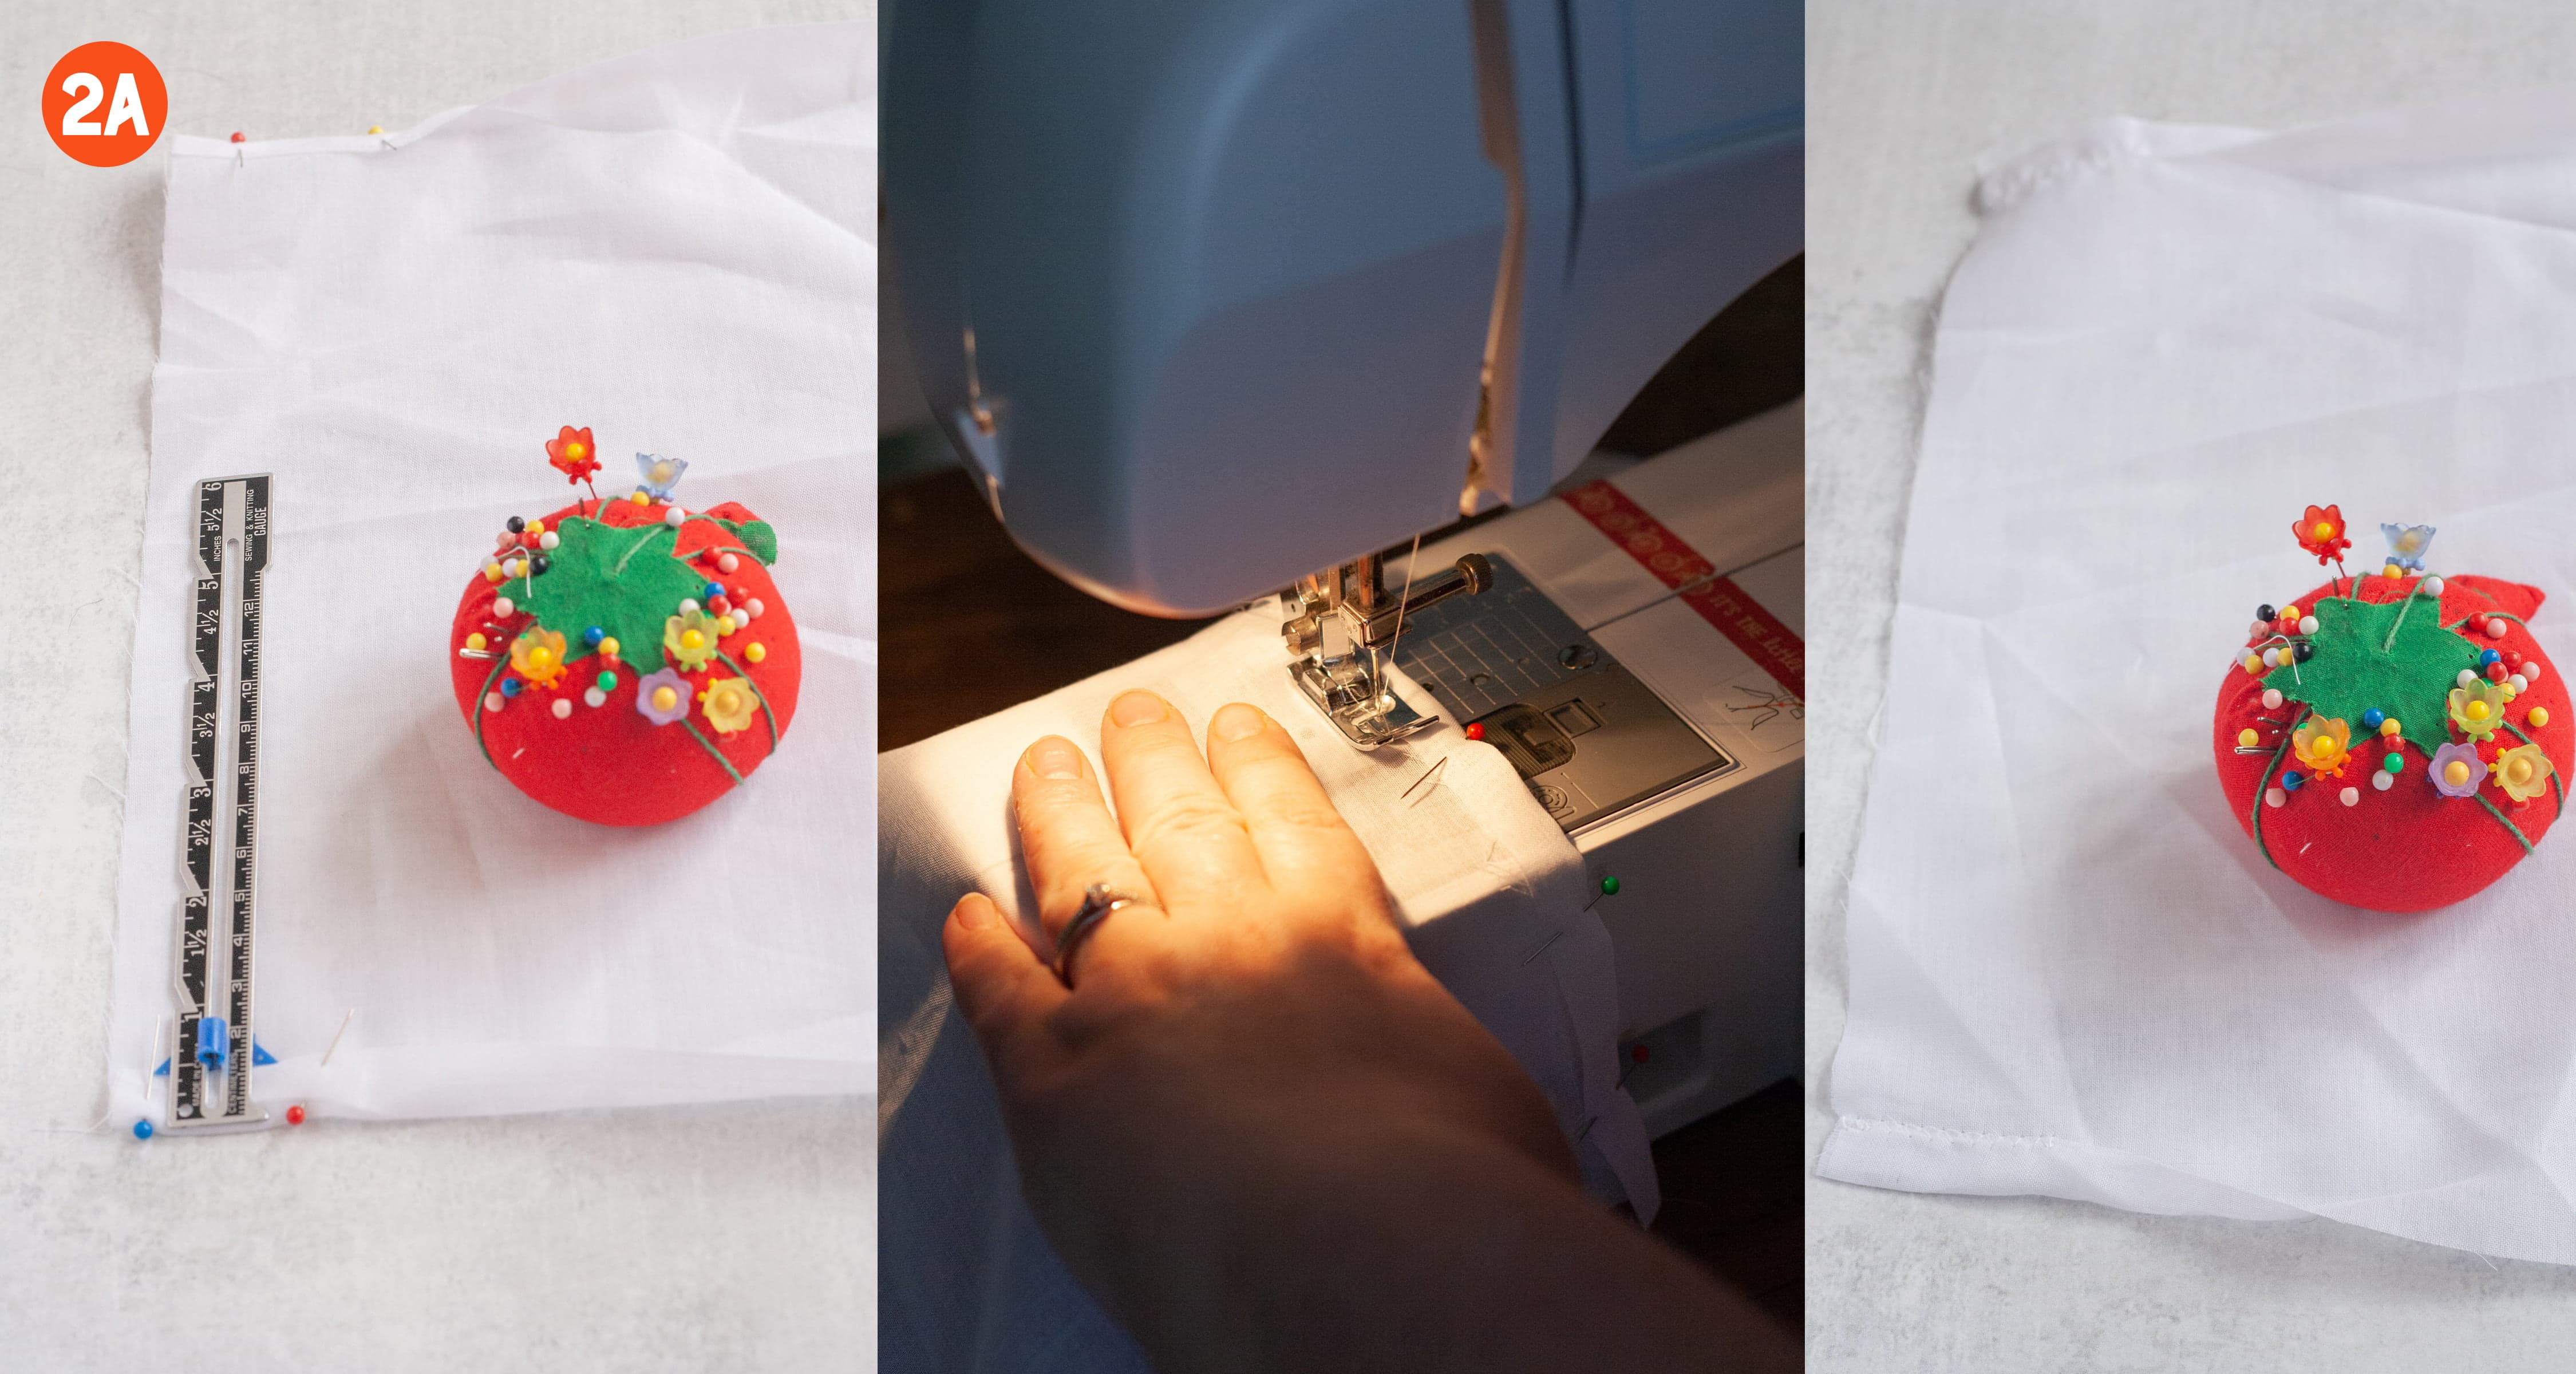 3 side-by-side shots showing how to make a drawstring casing. In one image, an edge of cotton voile is folded over and pinned. In the middle, a hand pushes fabric through a sewing machine. In the last image, that fold is sewn down. Labeled 2a.